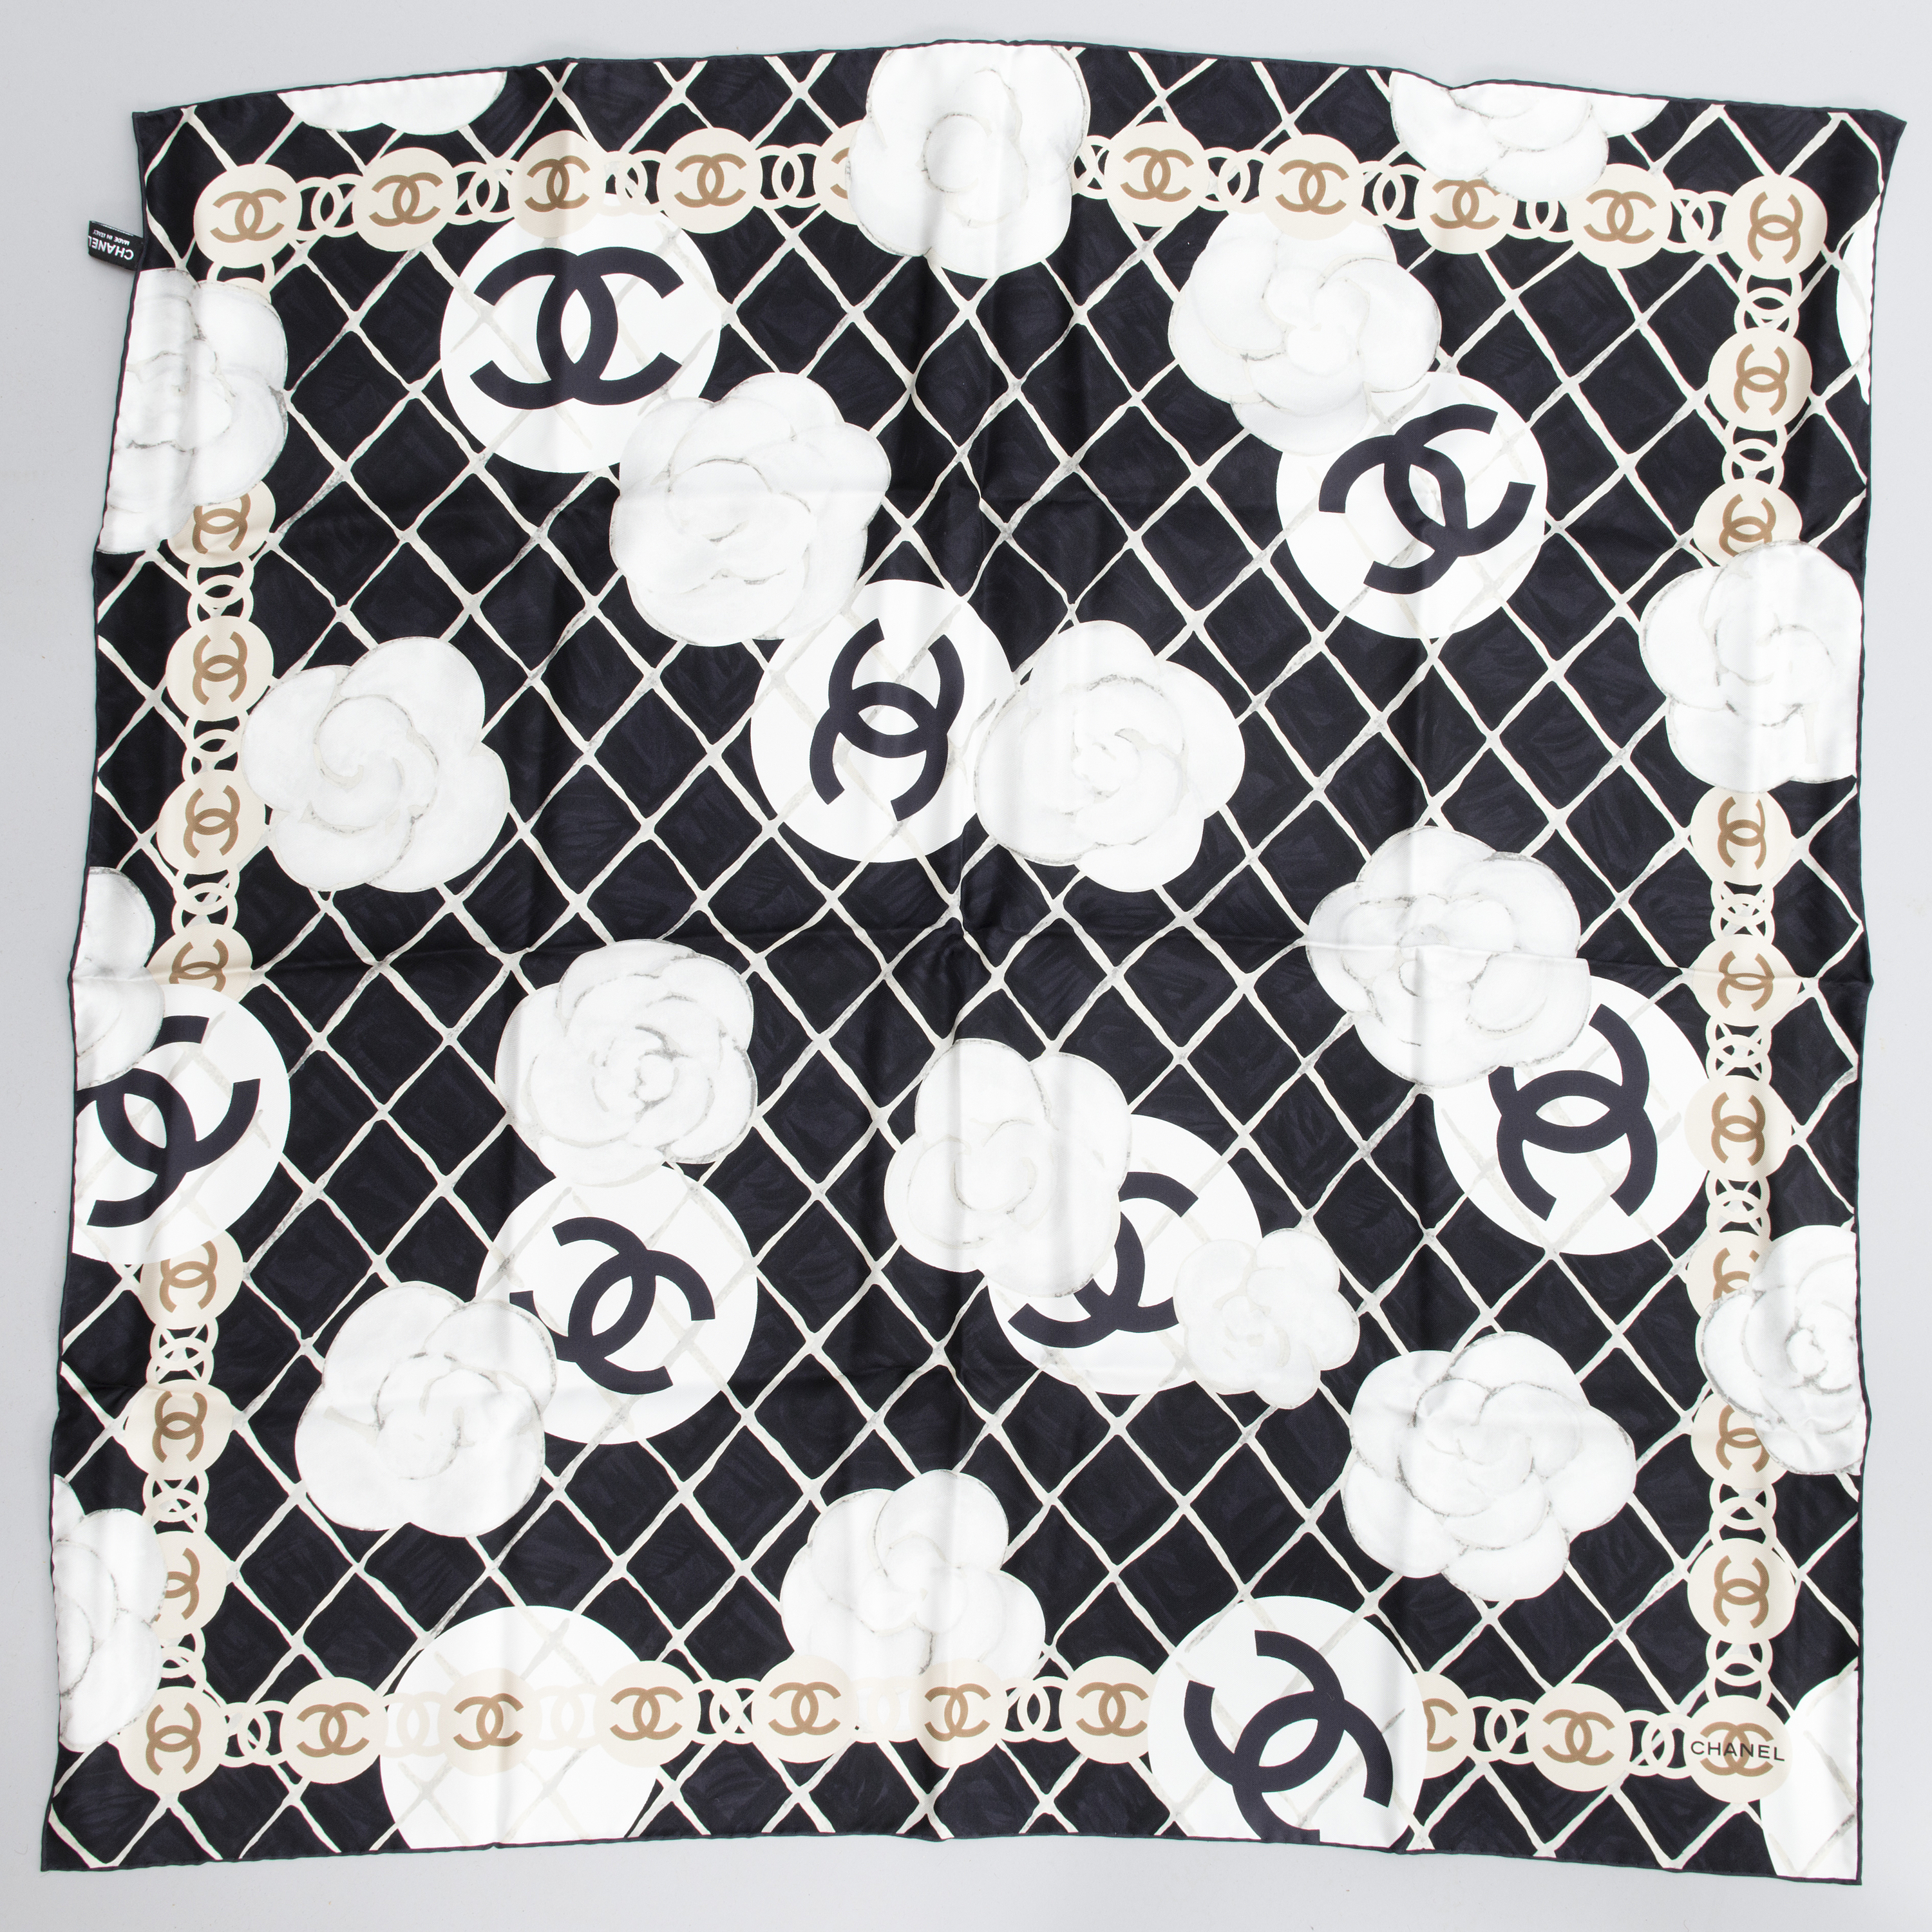 bc76491f CHANEL Silk Scarf with A Pair of Earrings. - Bukowskis